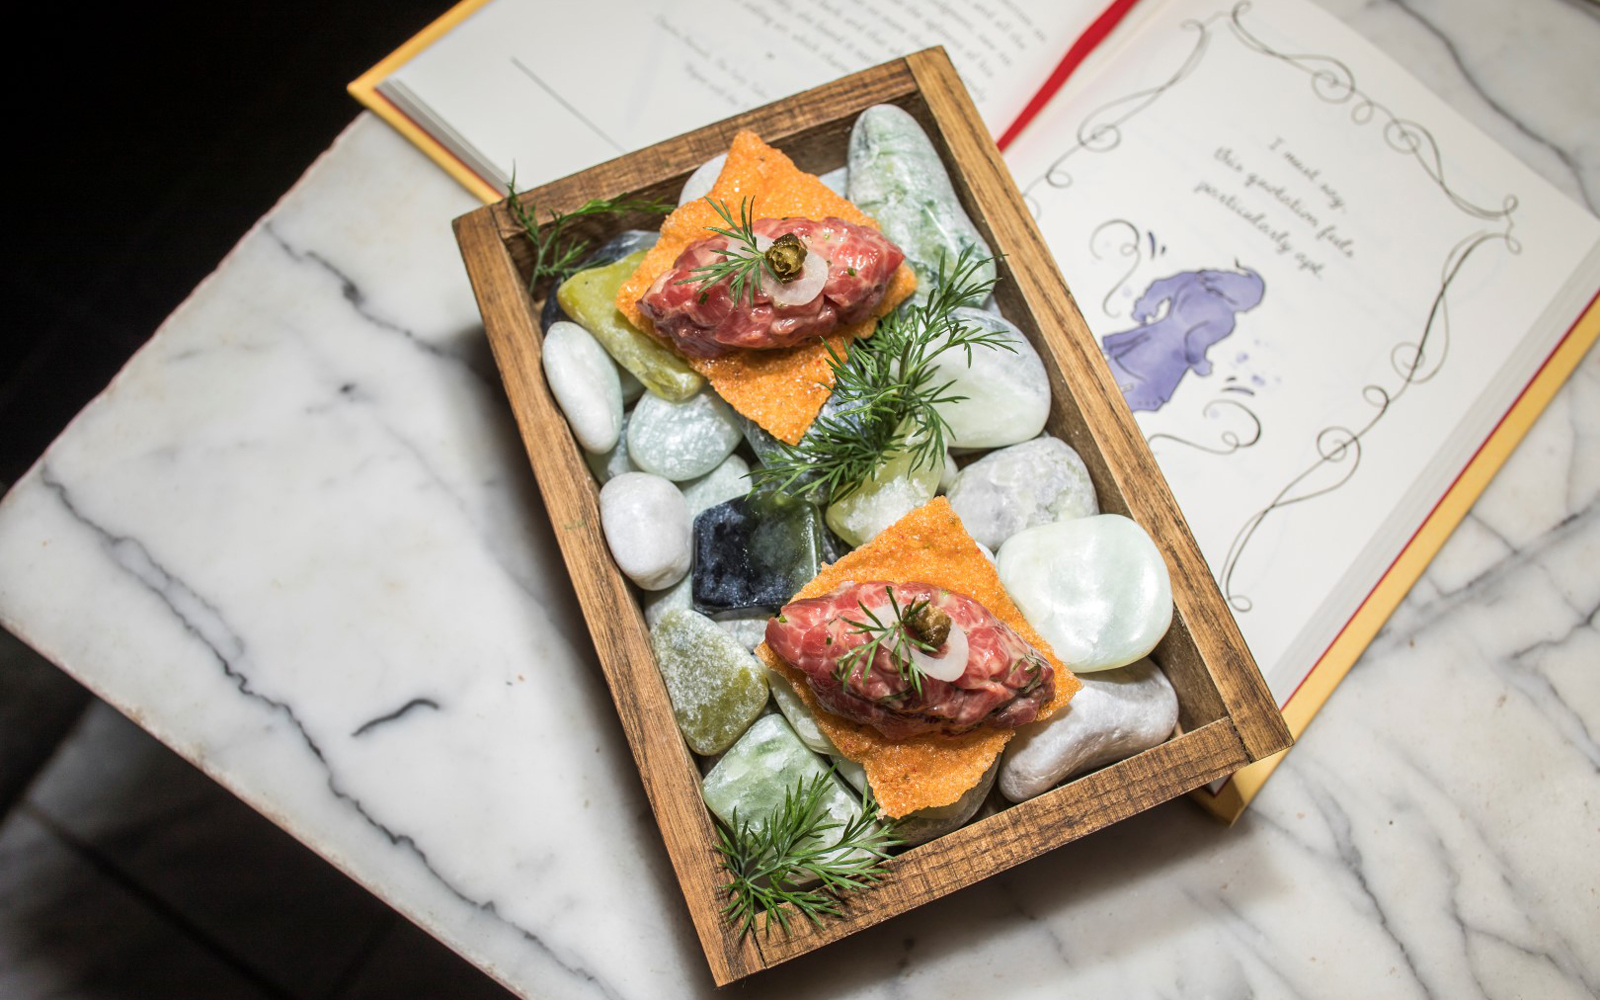 Jose Andrés' 10-course 'Beauty & the Beast'-inspired Dinner Will Make You Feel Like Belle